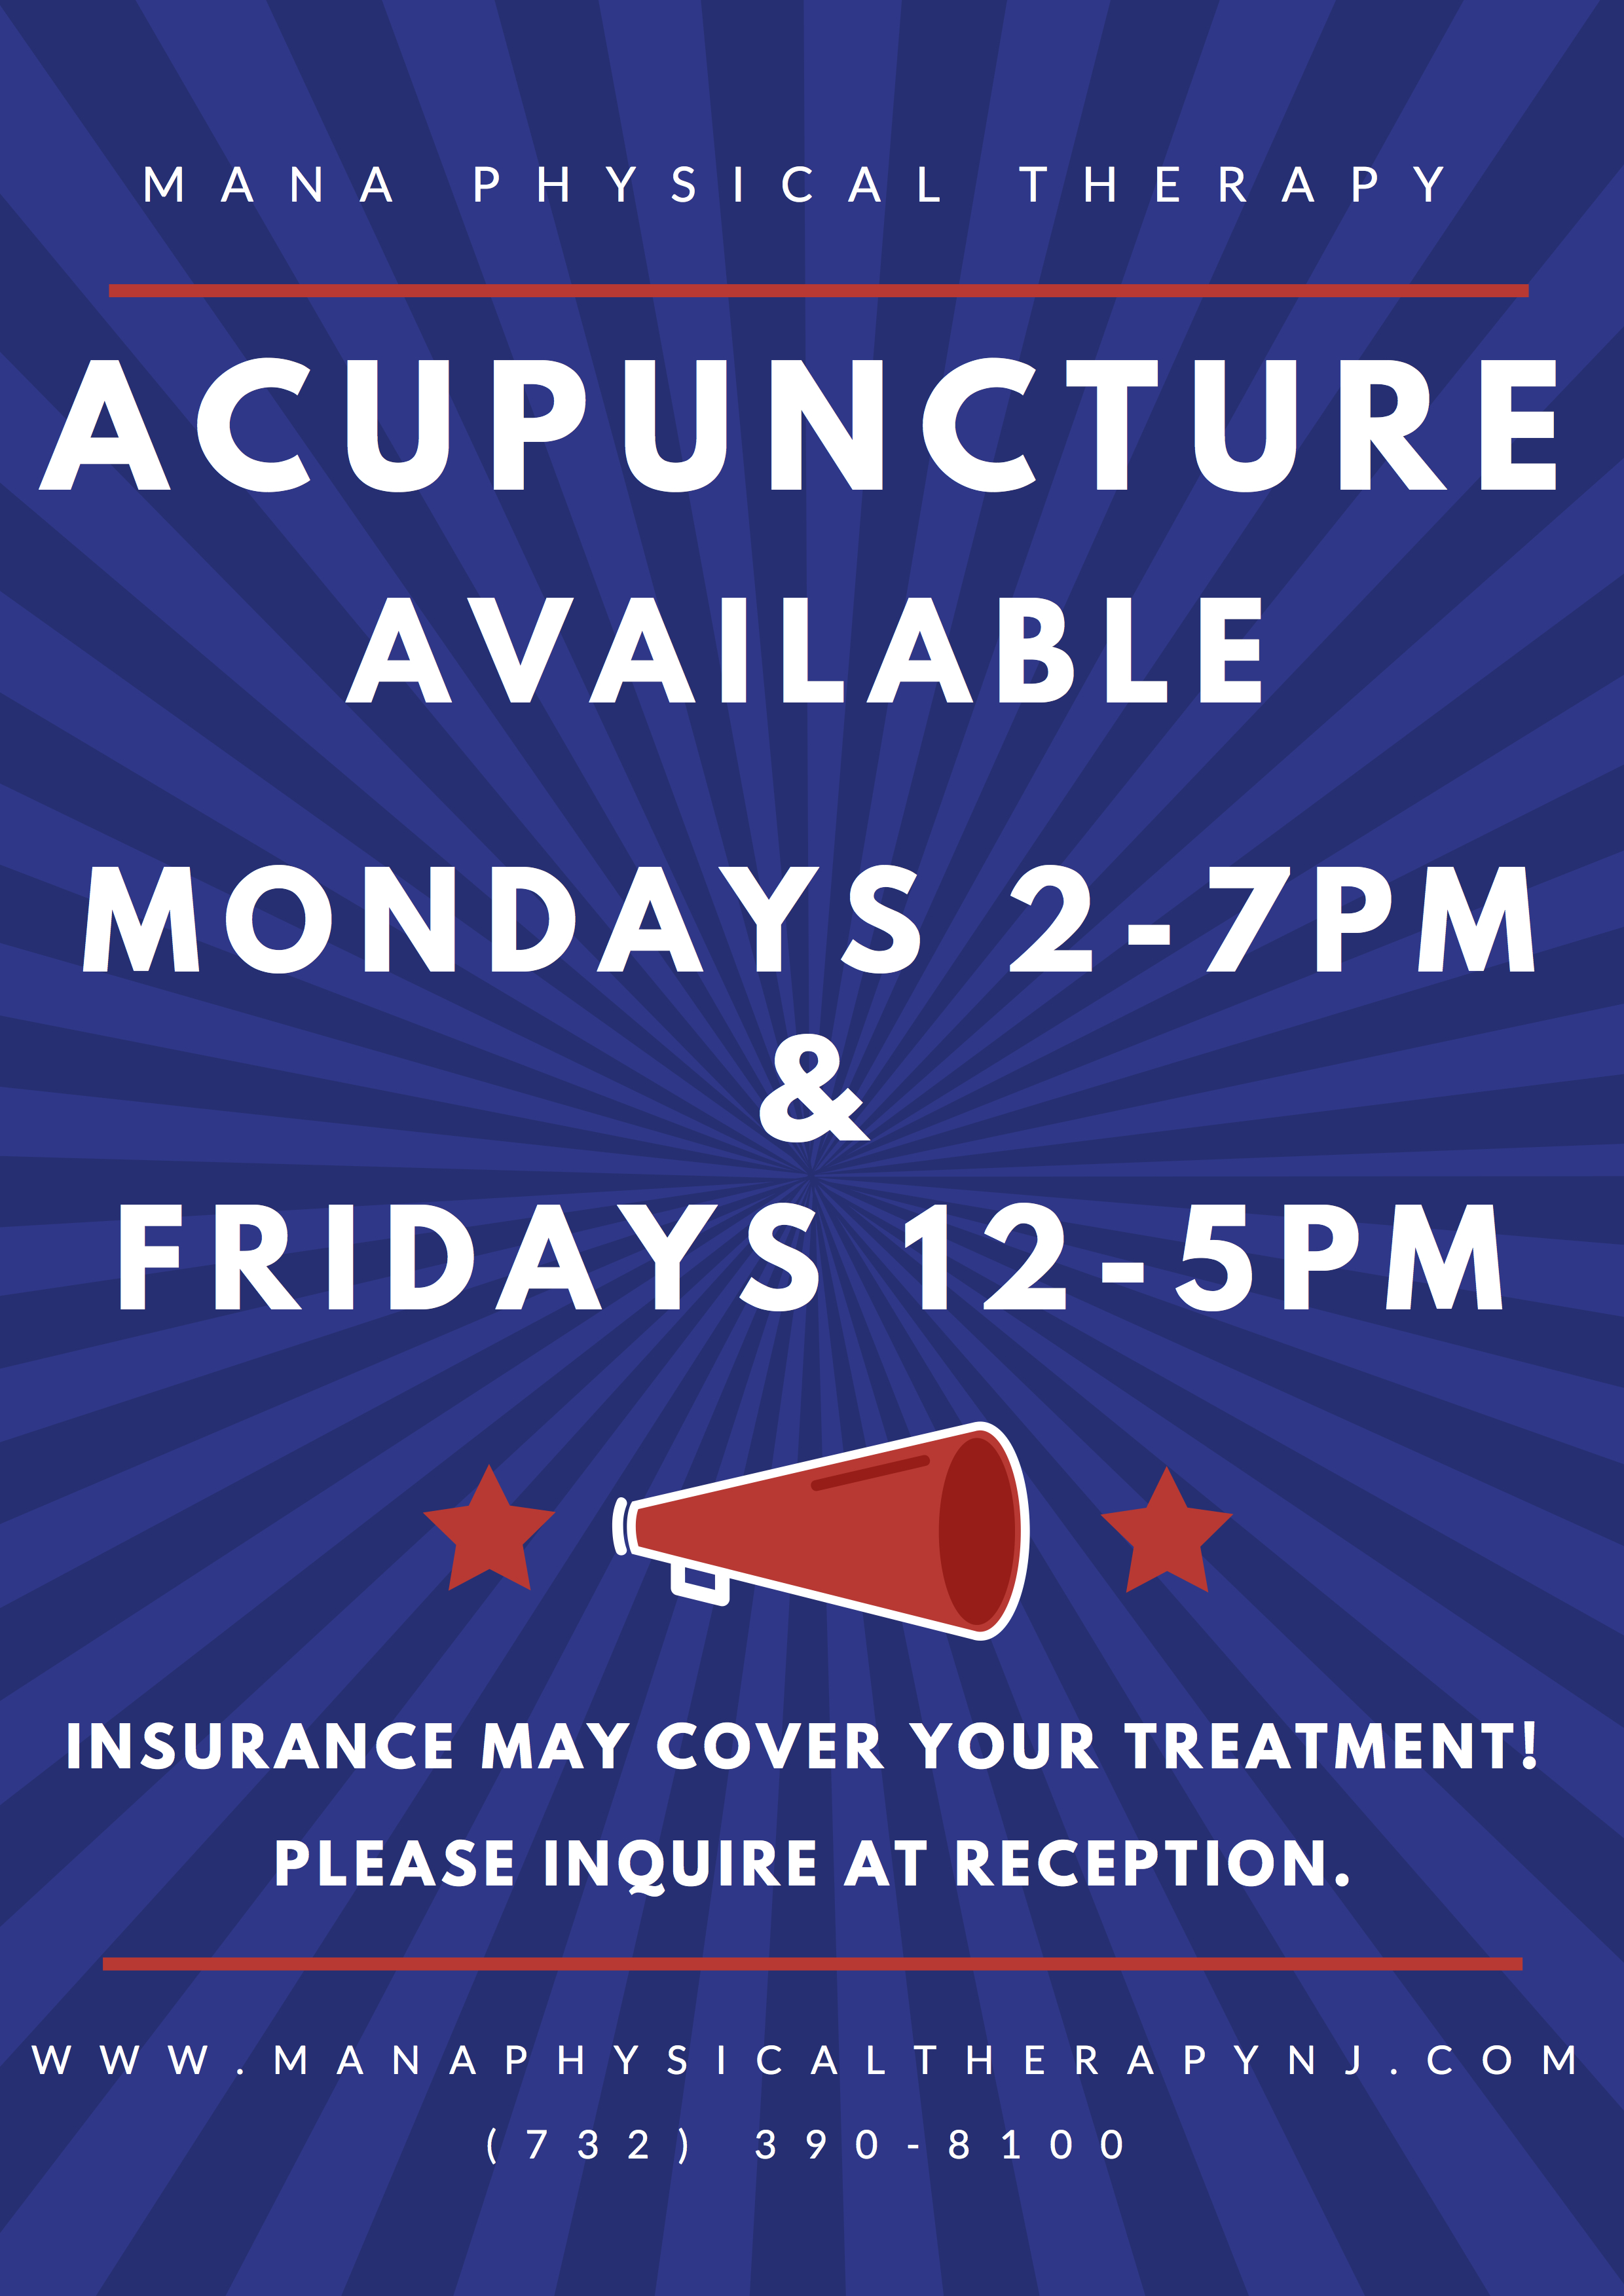 %name Acupuncture Now Available MONDAYS & FRIDAYS At Mana Physical Therapy